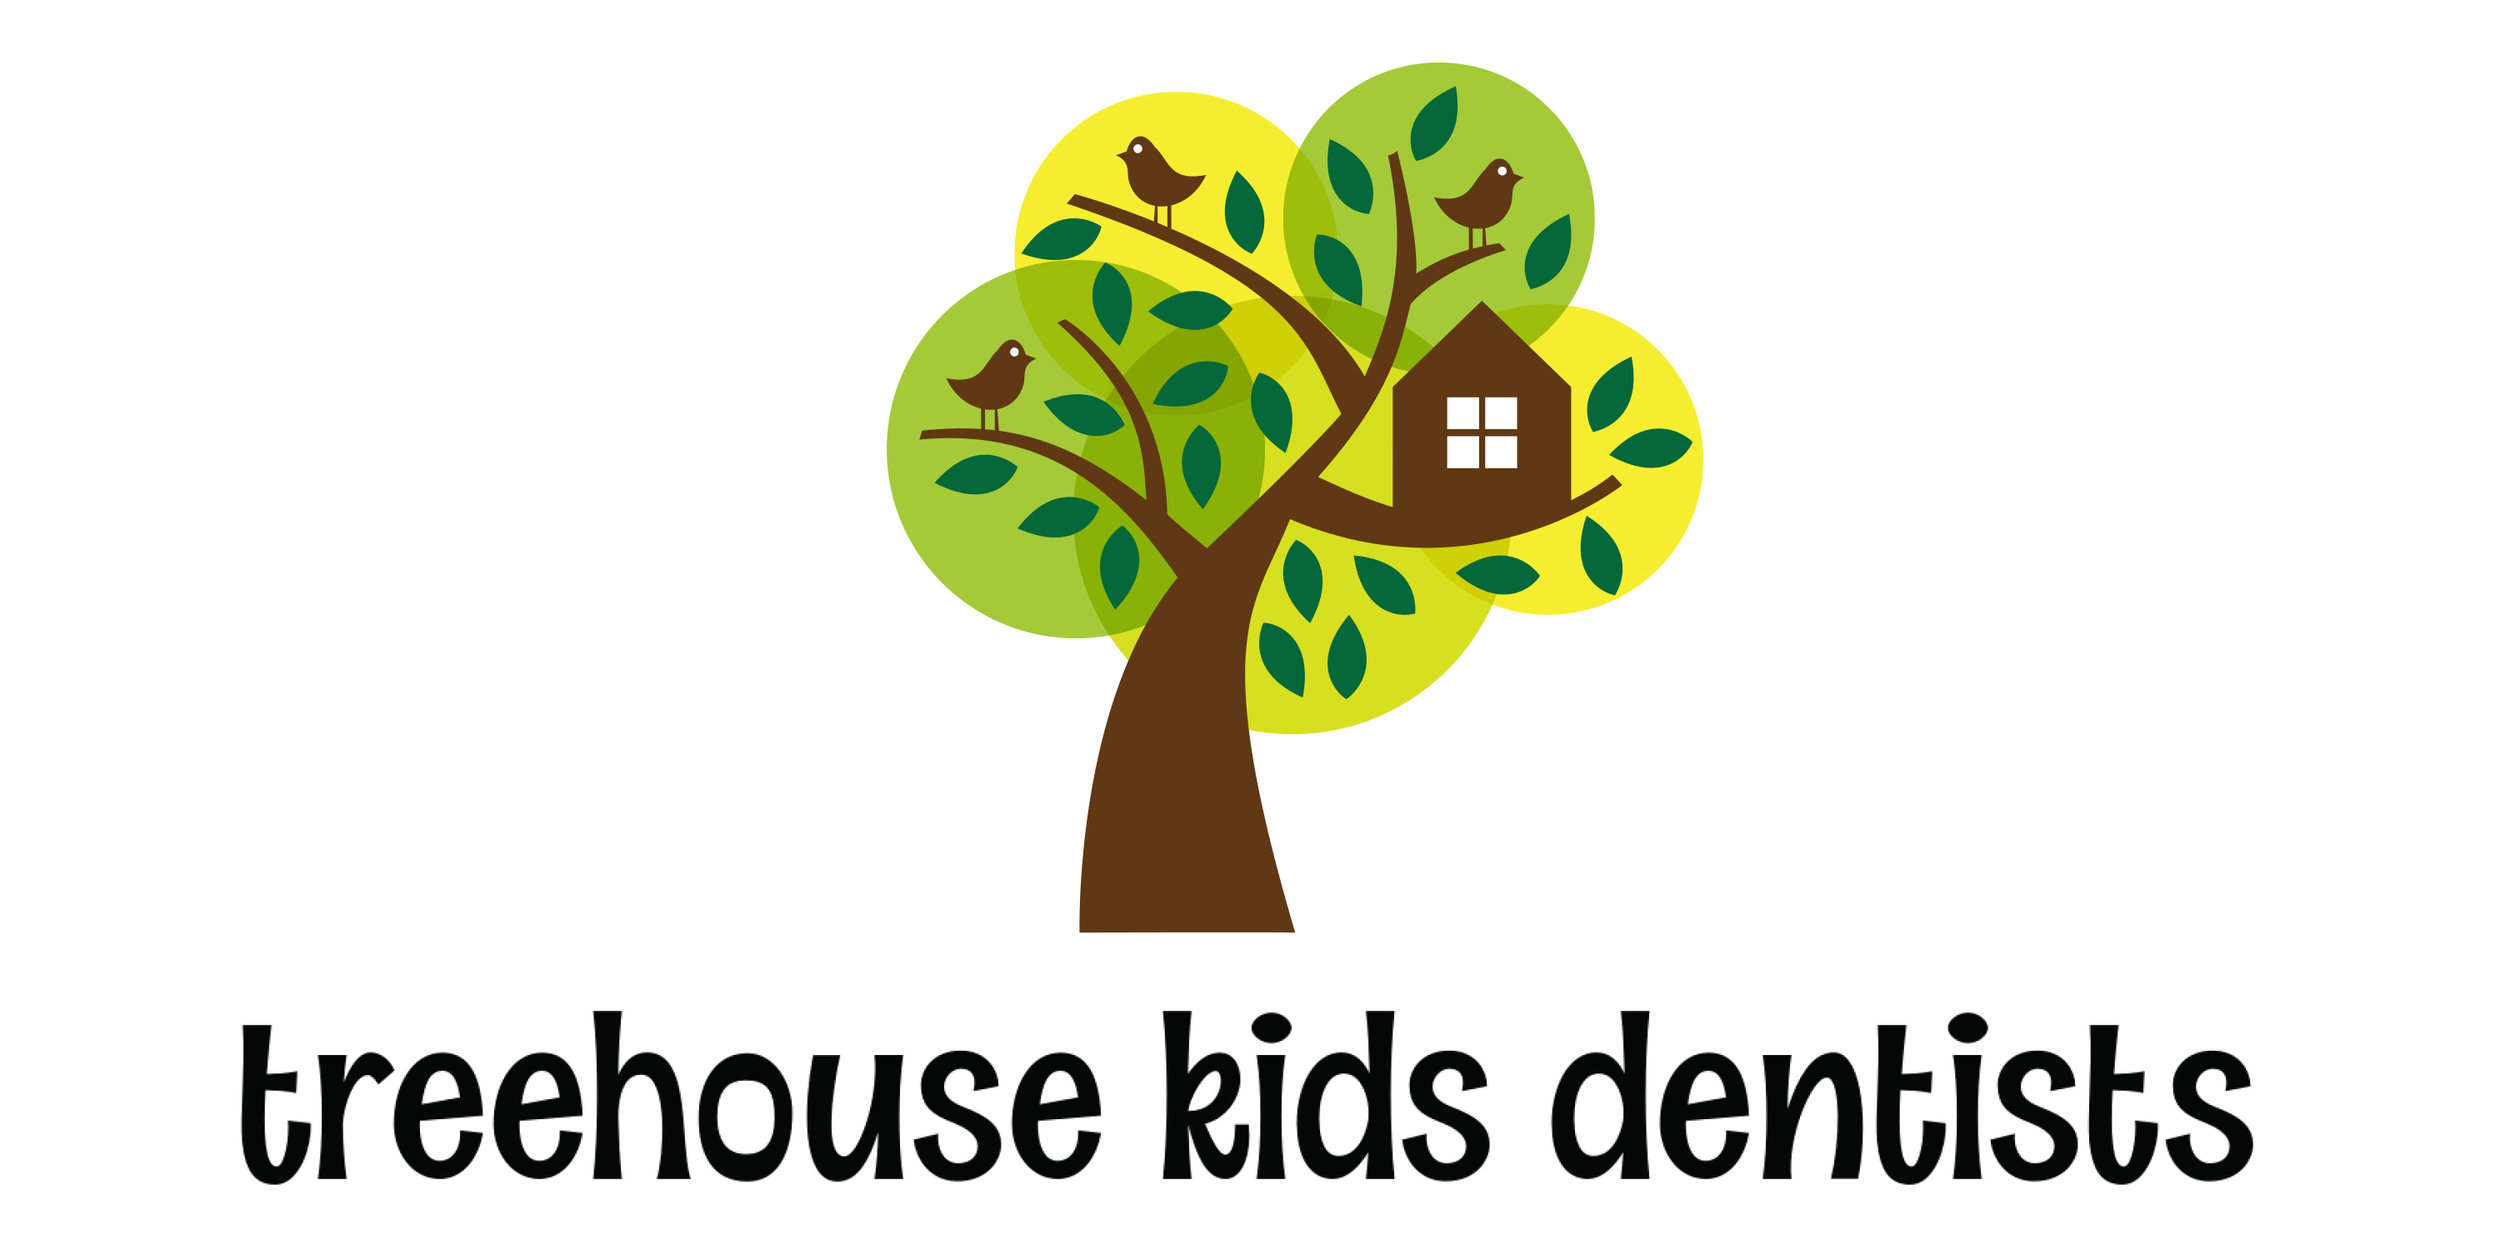 Web_Samples_Treehouse_Logos7.jpg